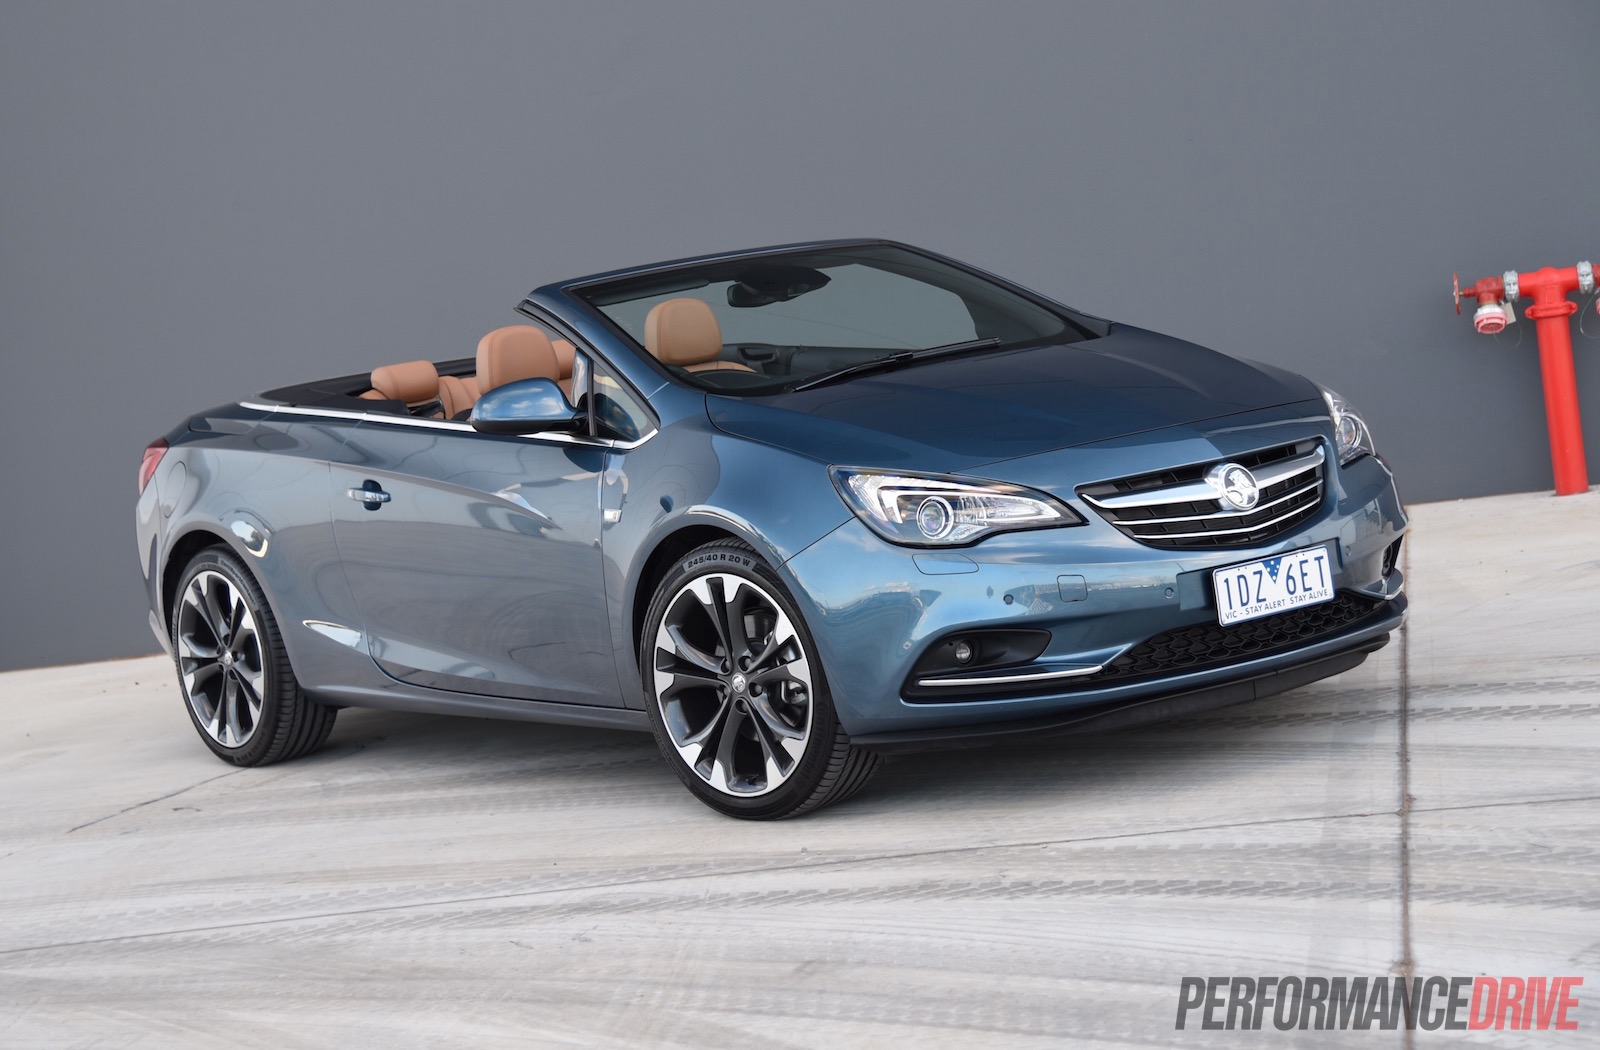 2015 Holden Cascada 1 6t Review Video Performancedrive